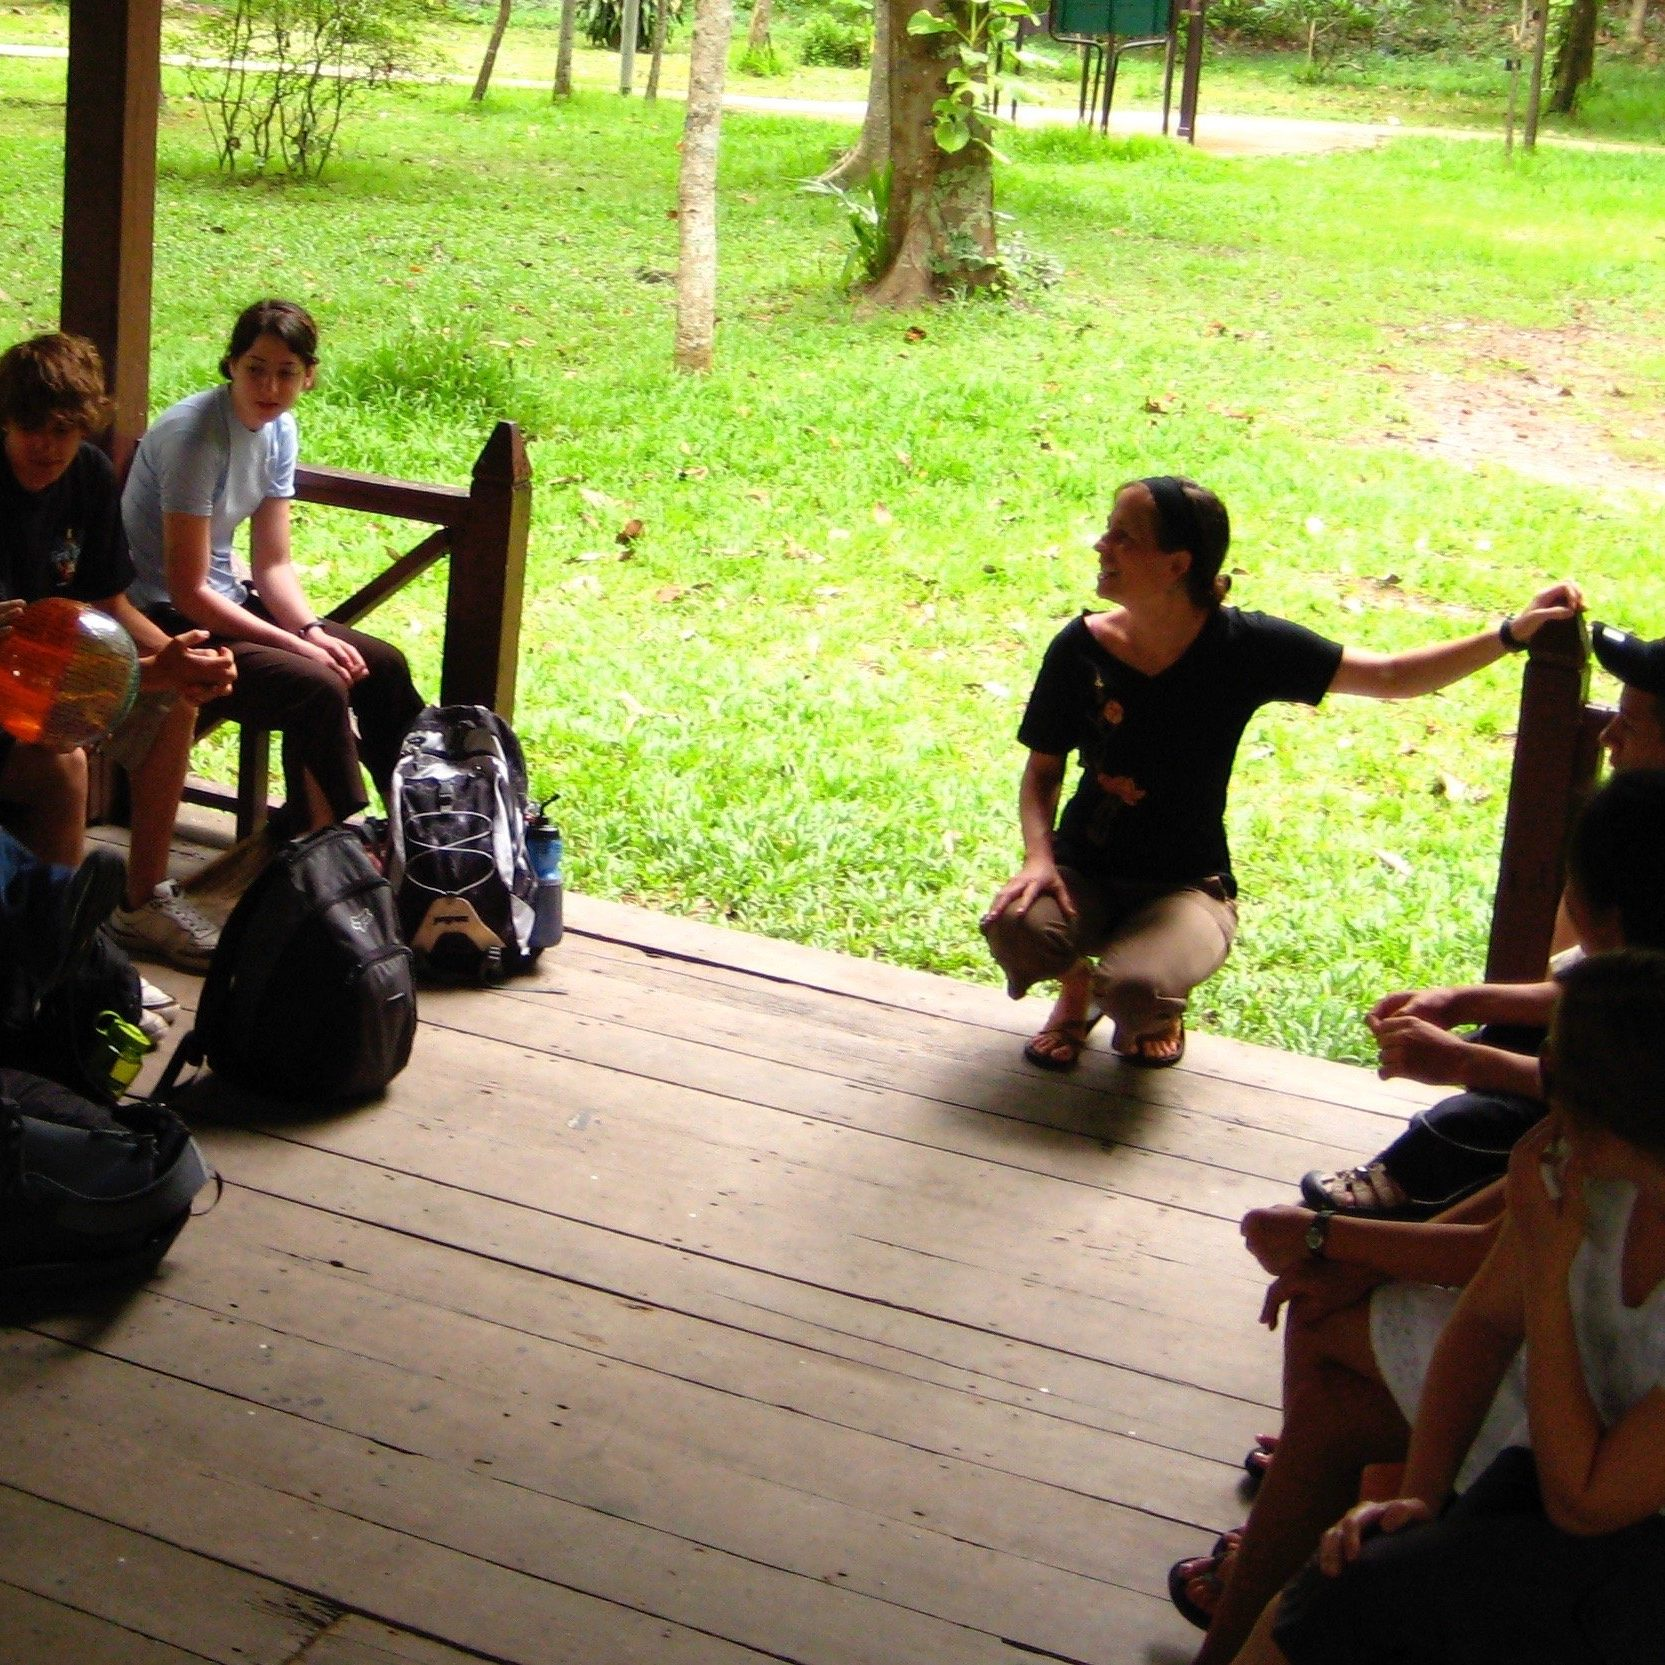 Jane Sarouhan facilitating a group discussion with students inspired to engage life, inside an open-air structure in Thailand